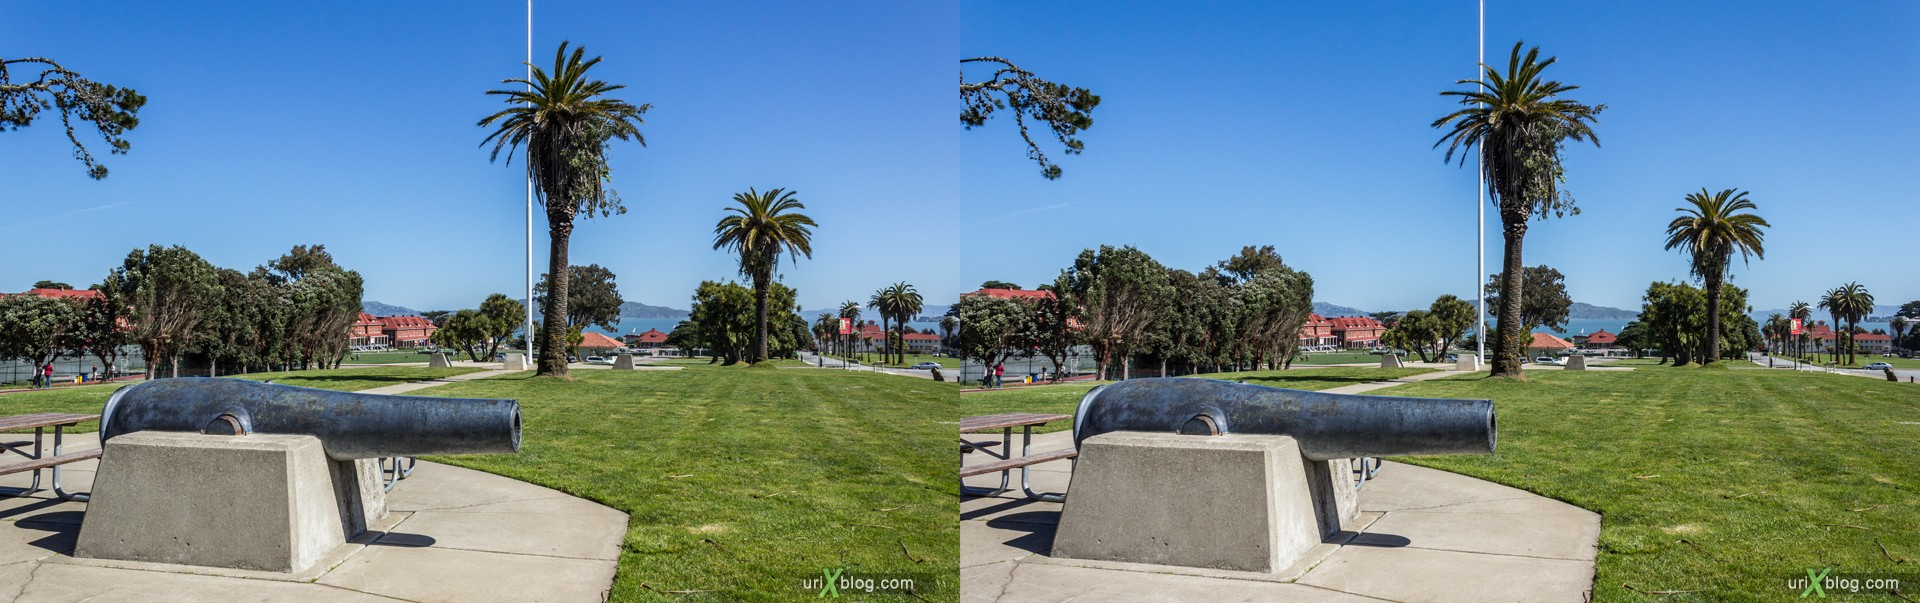 2013, USA, California, San Francisco National Cemetery, 3D, stereo pair, cross-eyed, crossview, cross view stereo pair, stereoscopic